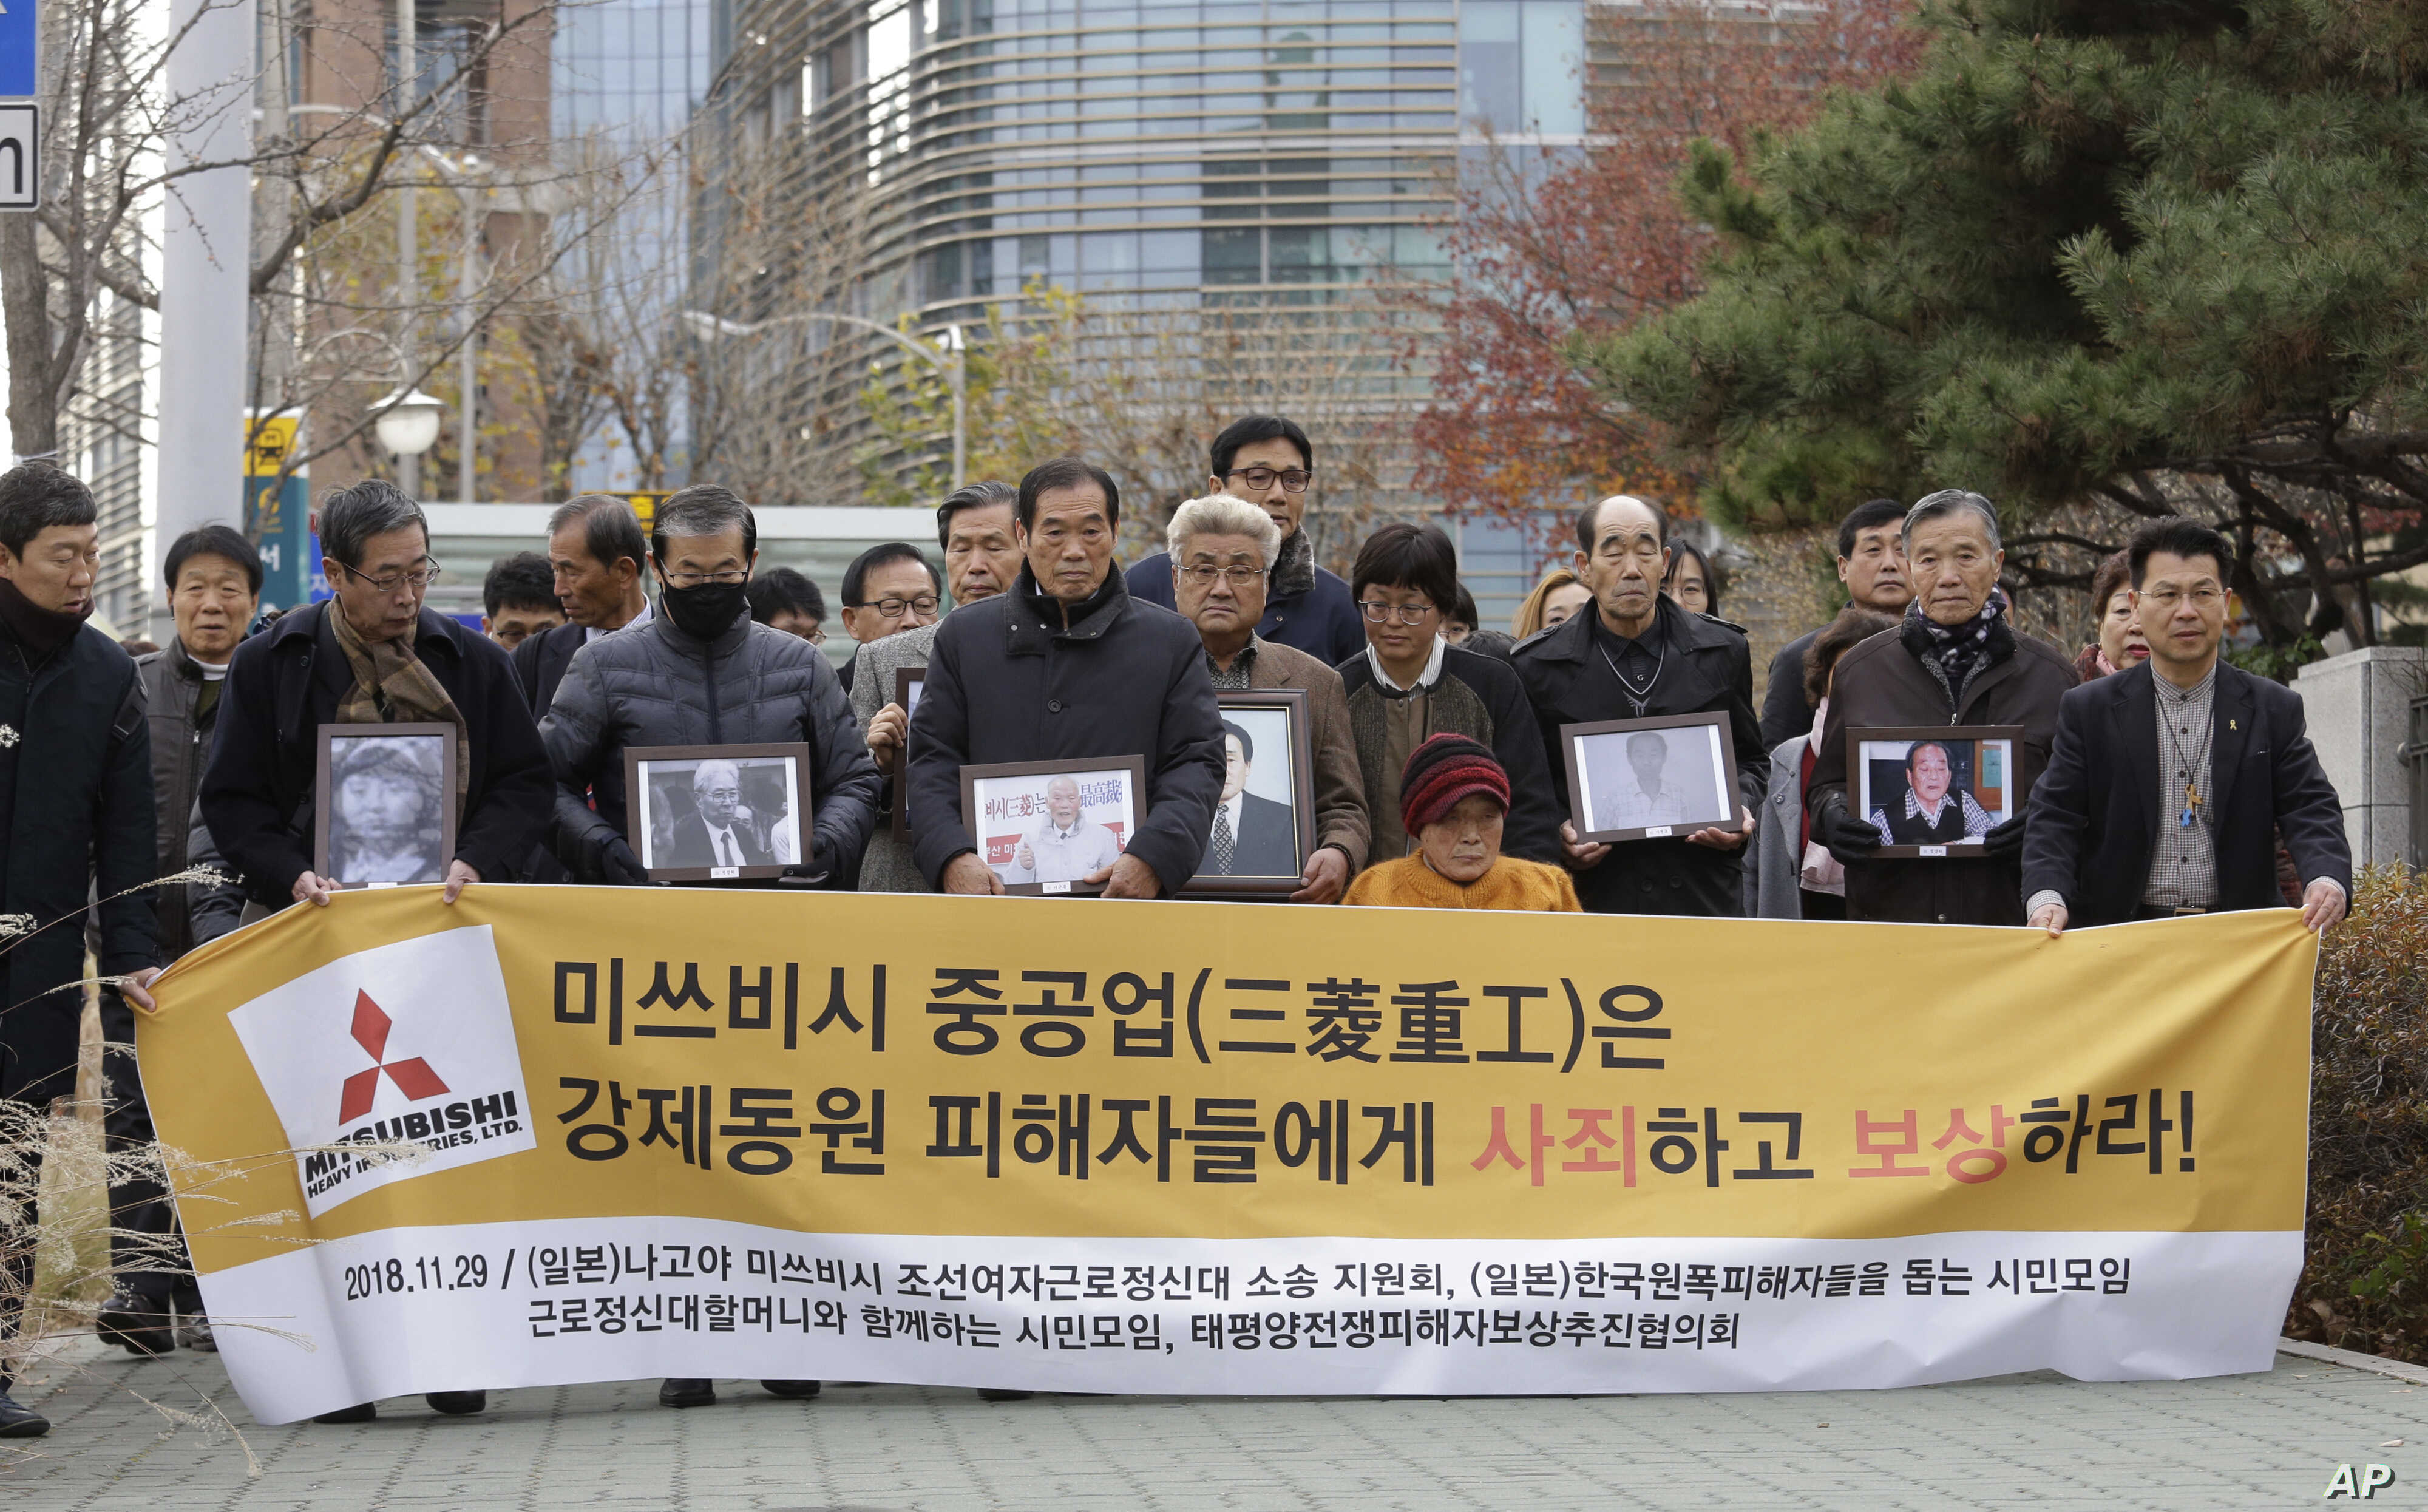 "Victims of Japan's forced labor and their family members arrive at the Supreme Court in Seoul, South Korea, Nov. 29, 2018. The sign reads "" Mitsubishi Heavy Industries apologize and compensate victims."""